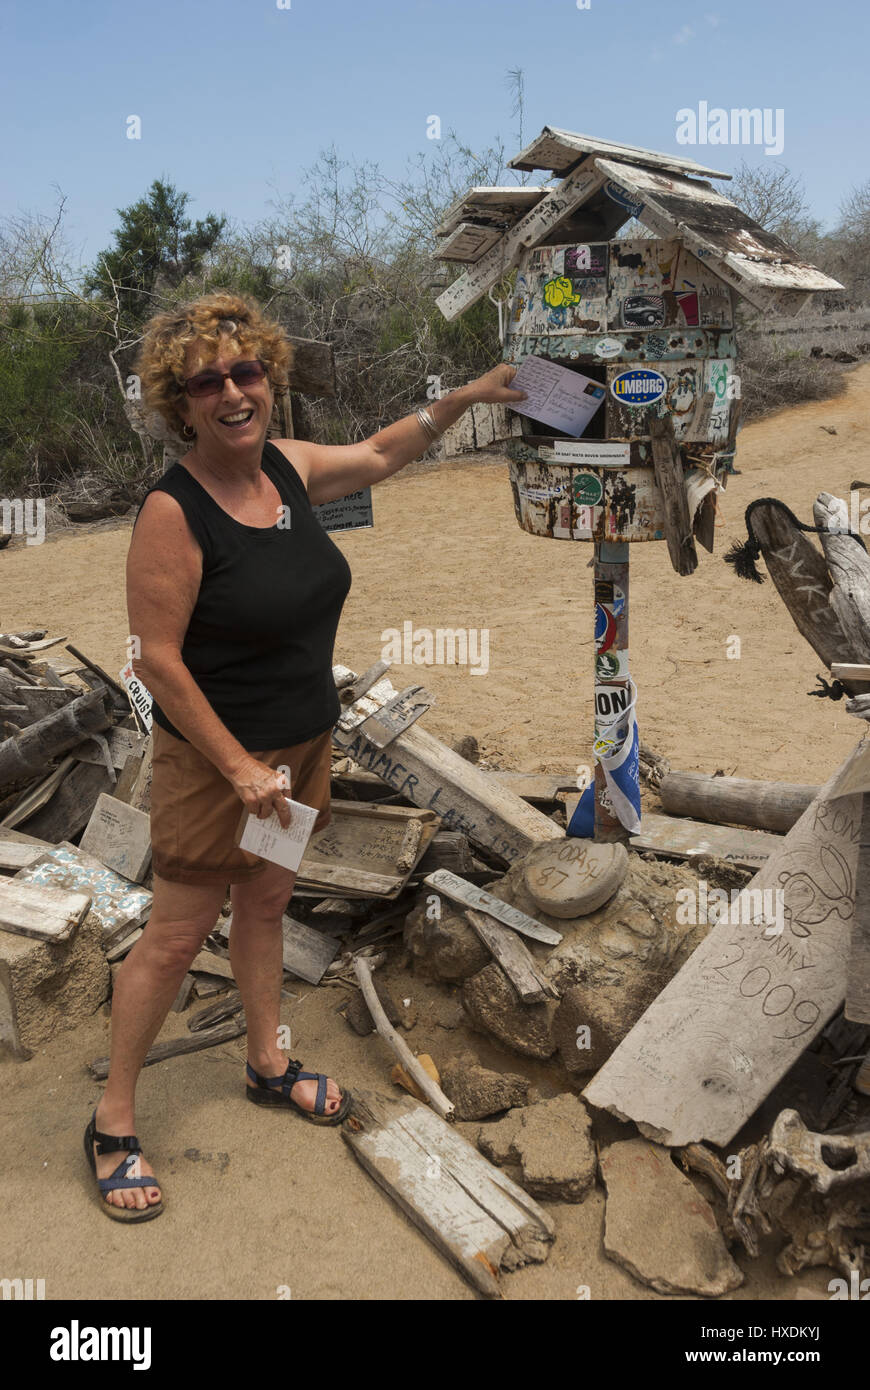 Ecuador, Galapagos, Floreana island, Post Office Bay, Visitor sending mail from whaler's postbox - Stock Image